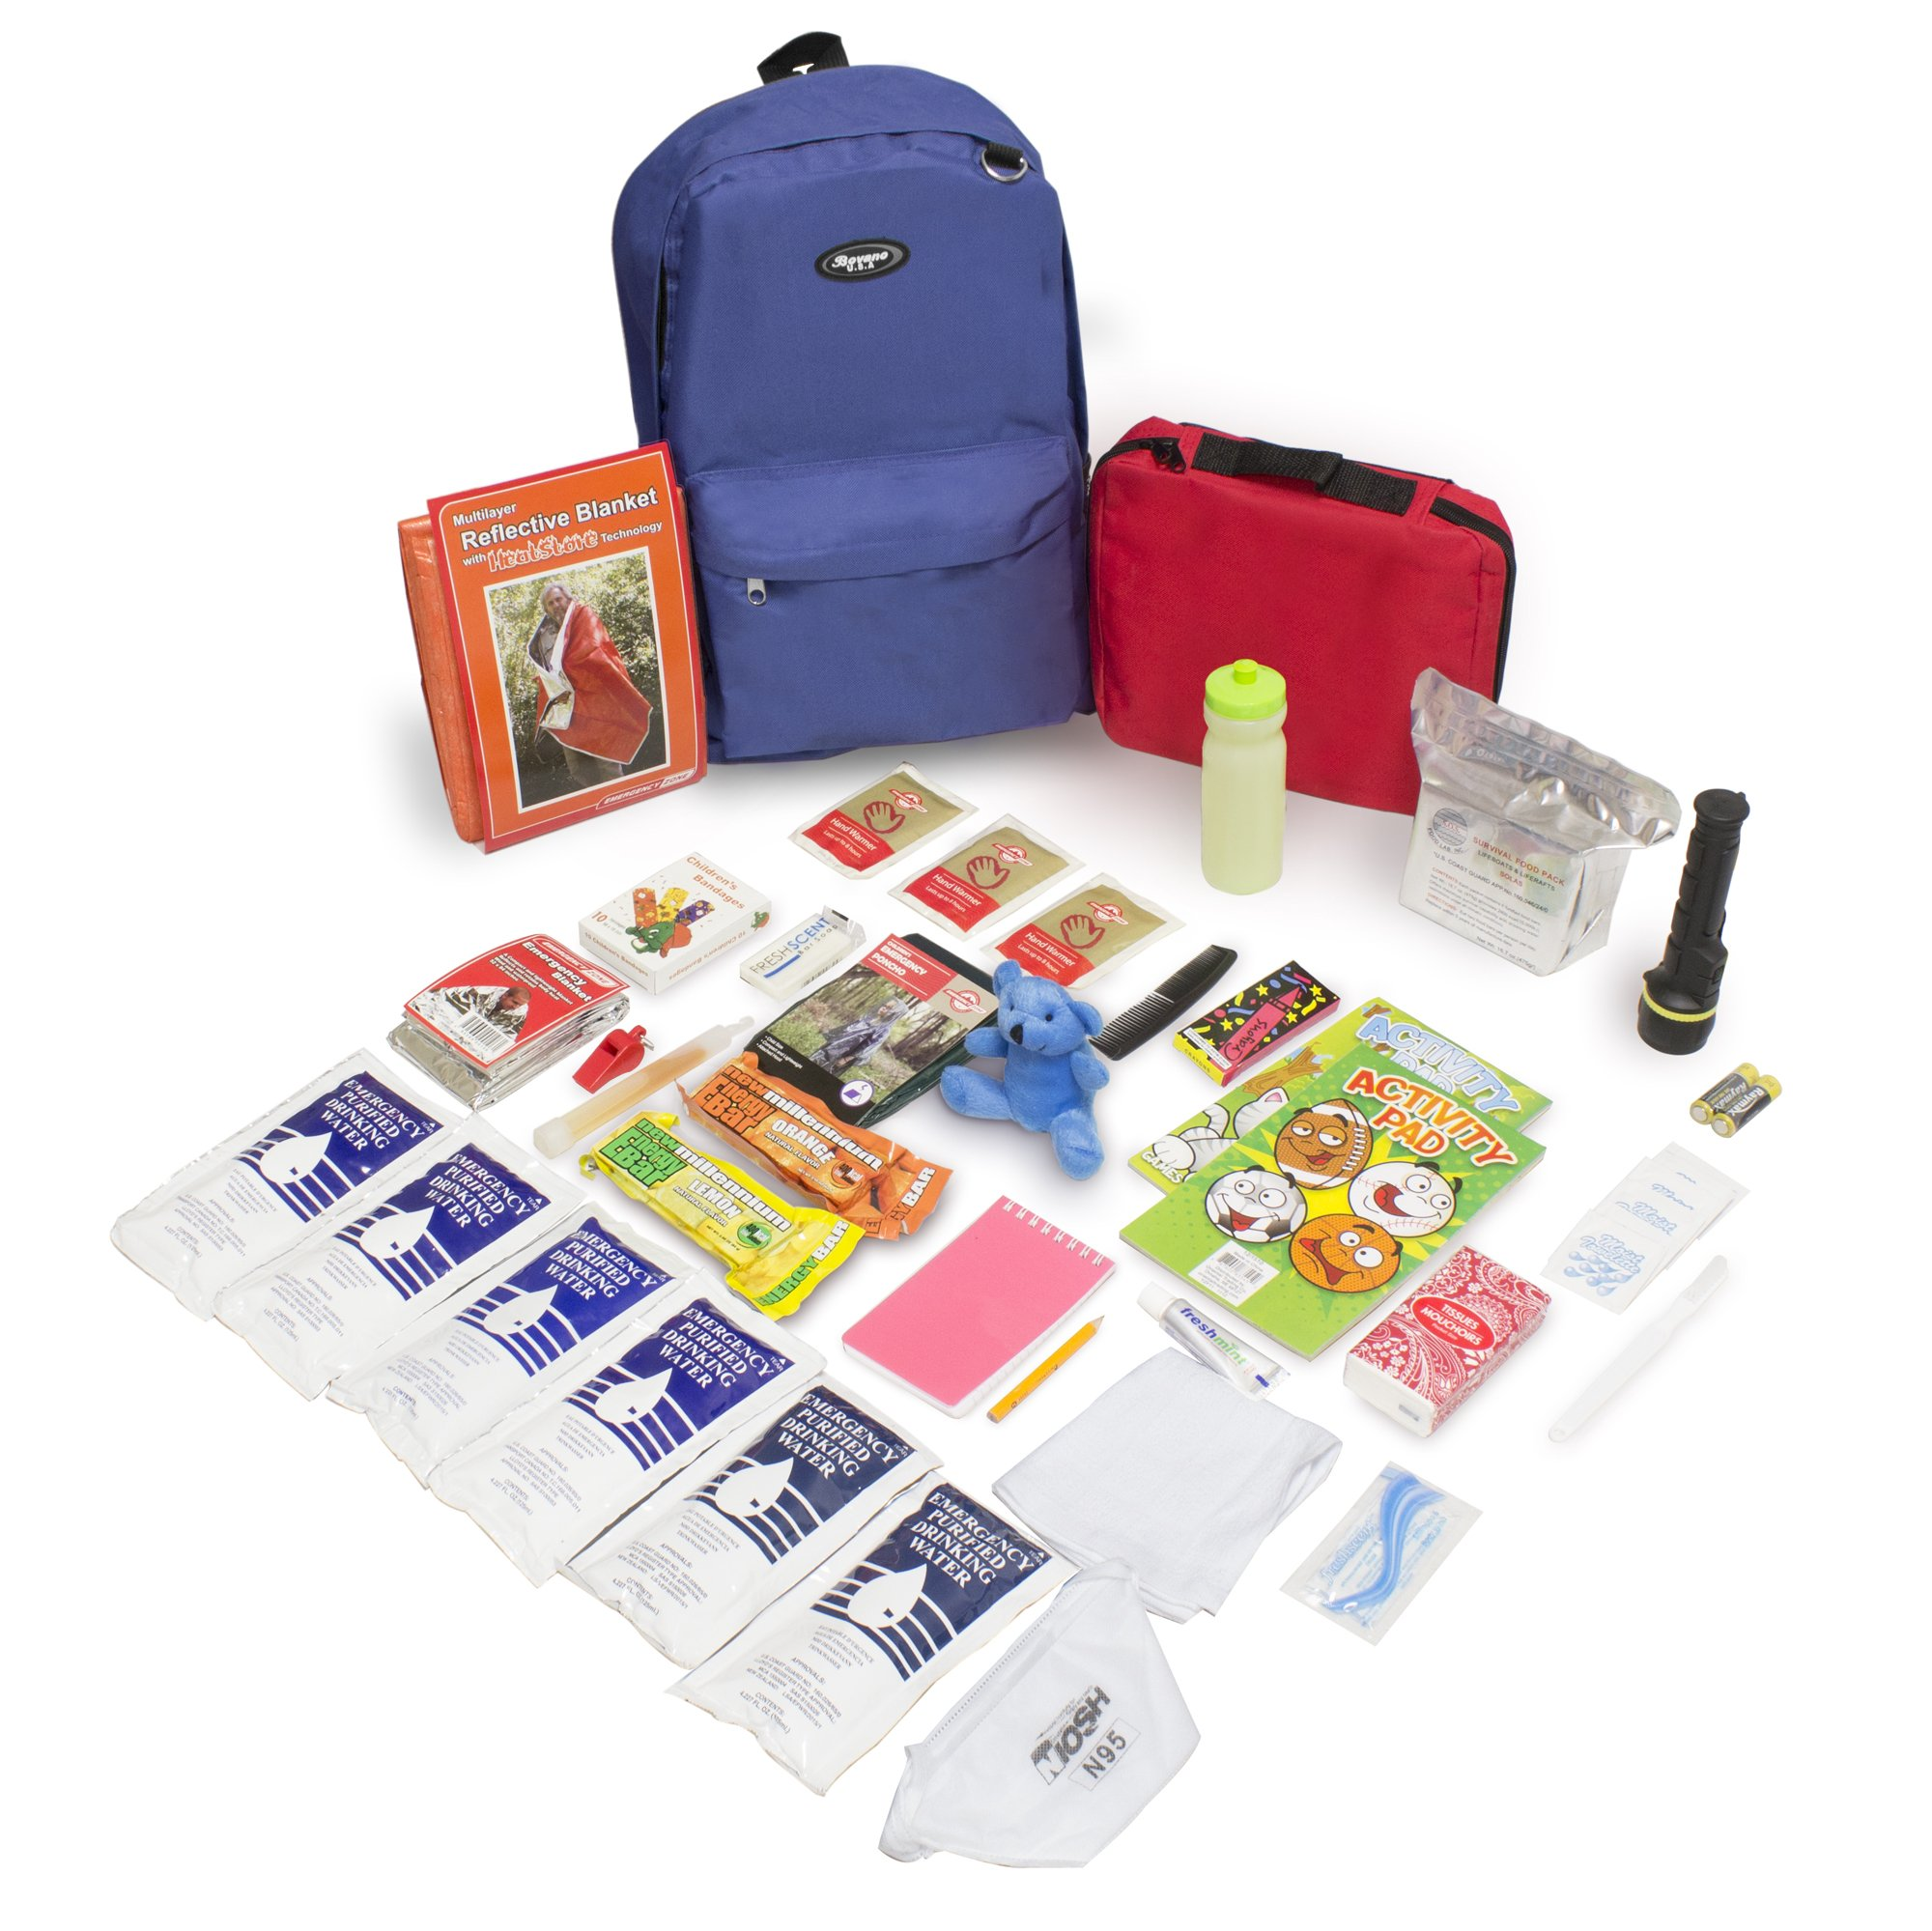 Keep-Me-Safe Children's Deluxe 72-Hr Emergency Survival Kit, Royal Blue by Emergency Zone